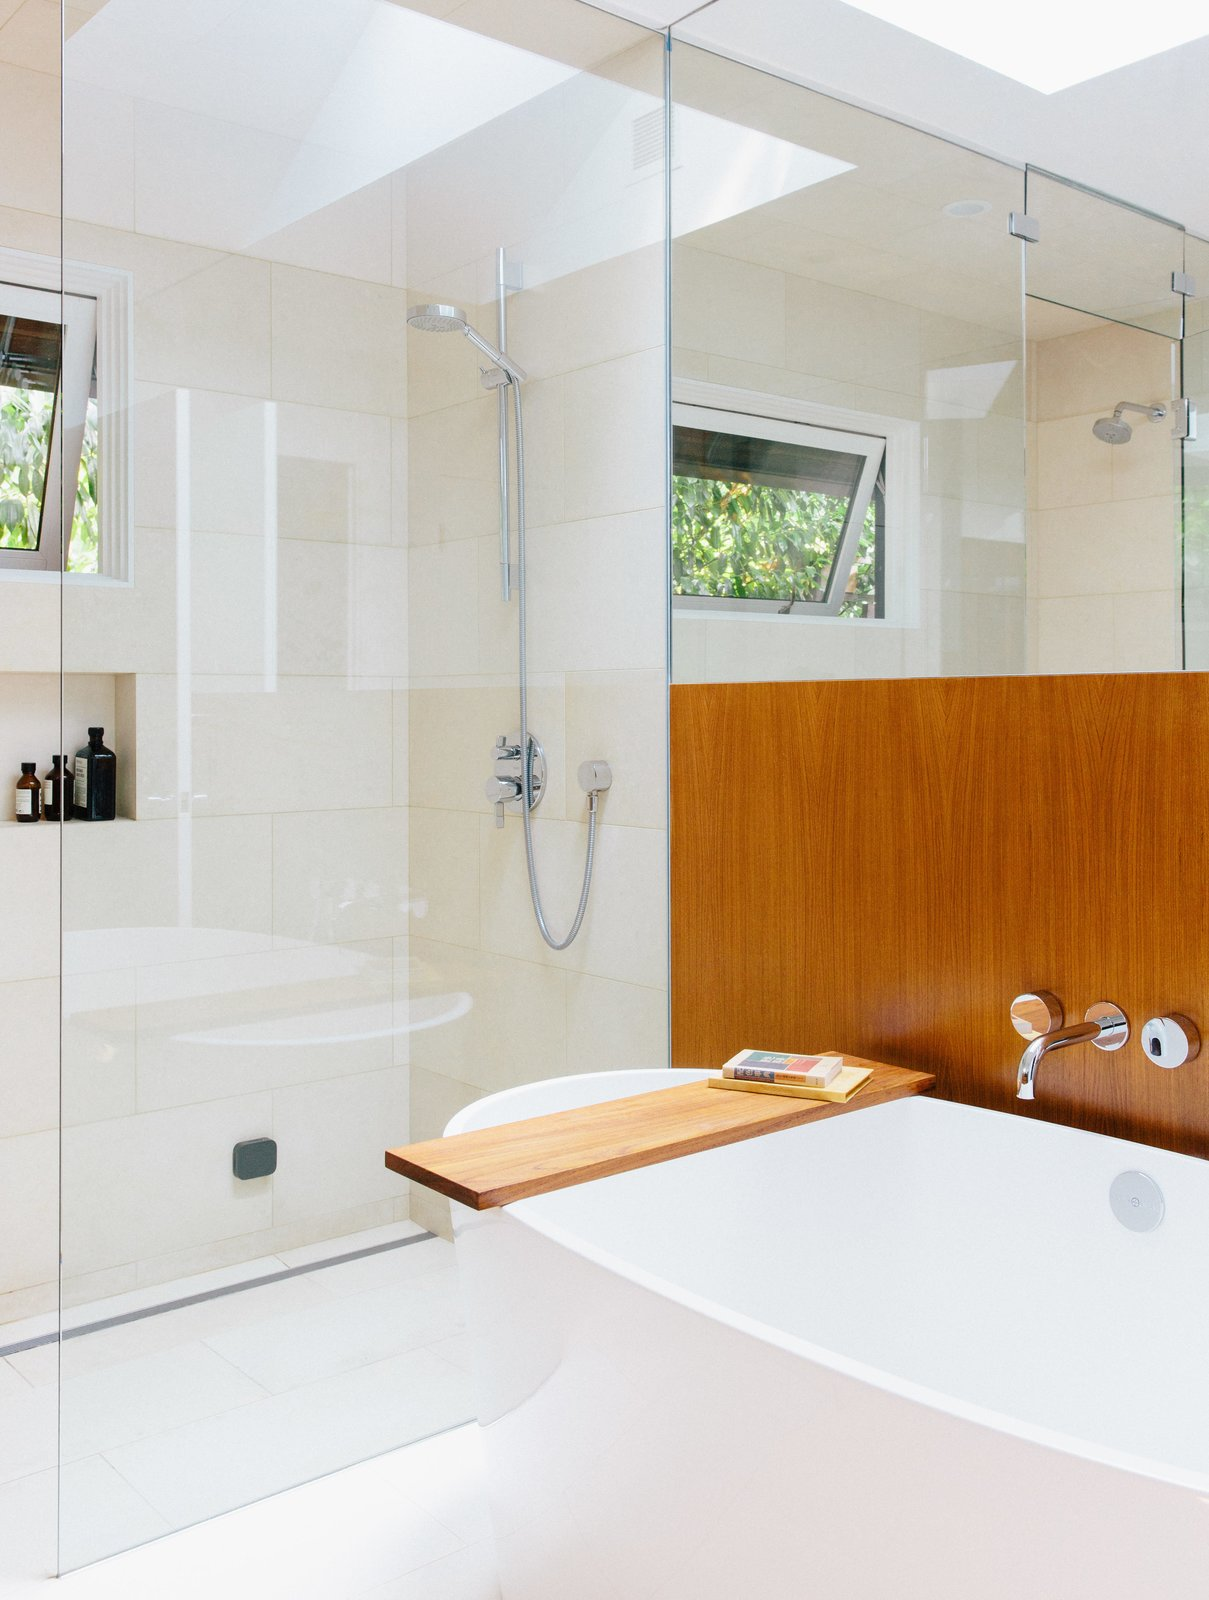 The master bath is a bright sanctuary with a freestanding tub by Victoria + Albert and Ecostat shower fixtures by Hansgrohe. Tagged: Bath Room and Freestanding Tub. Best Photos